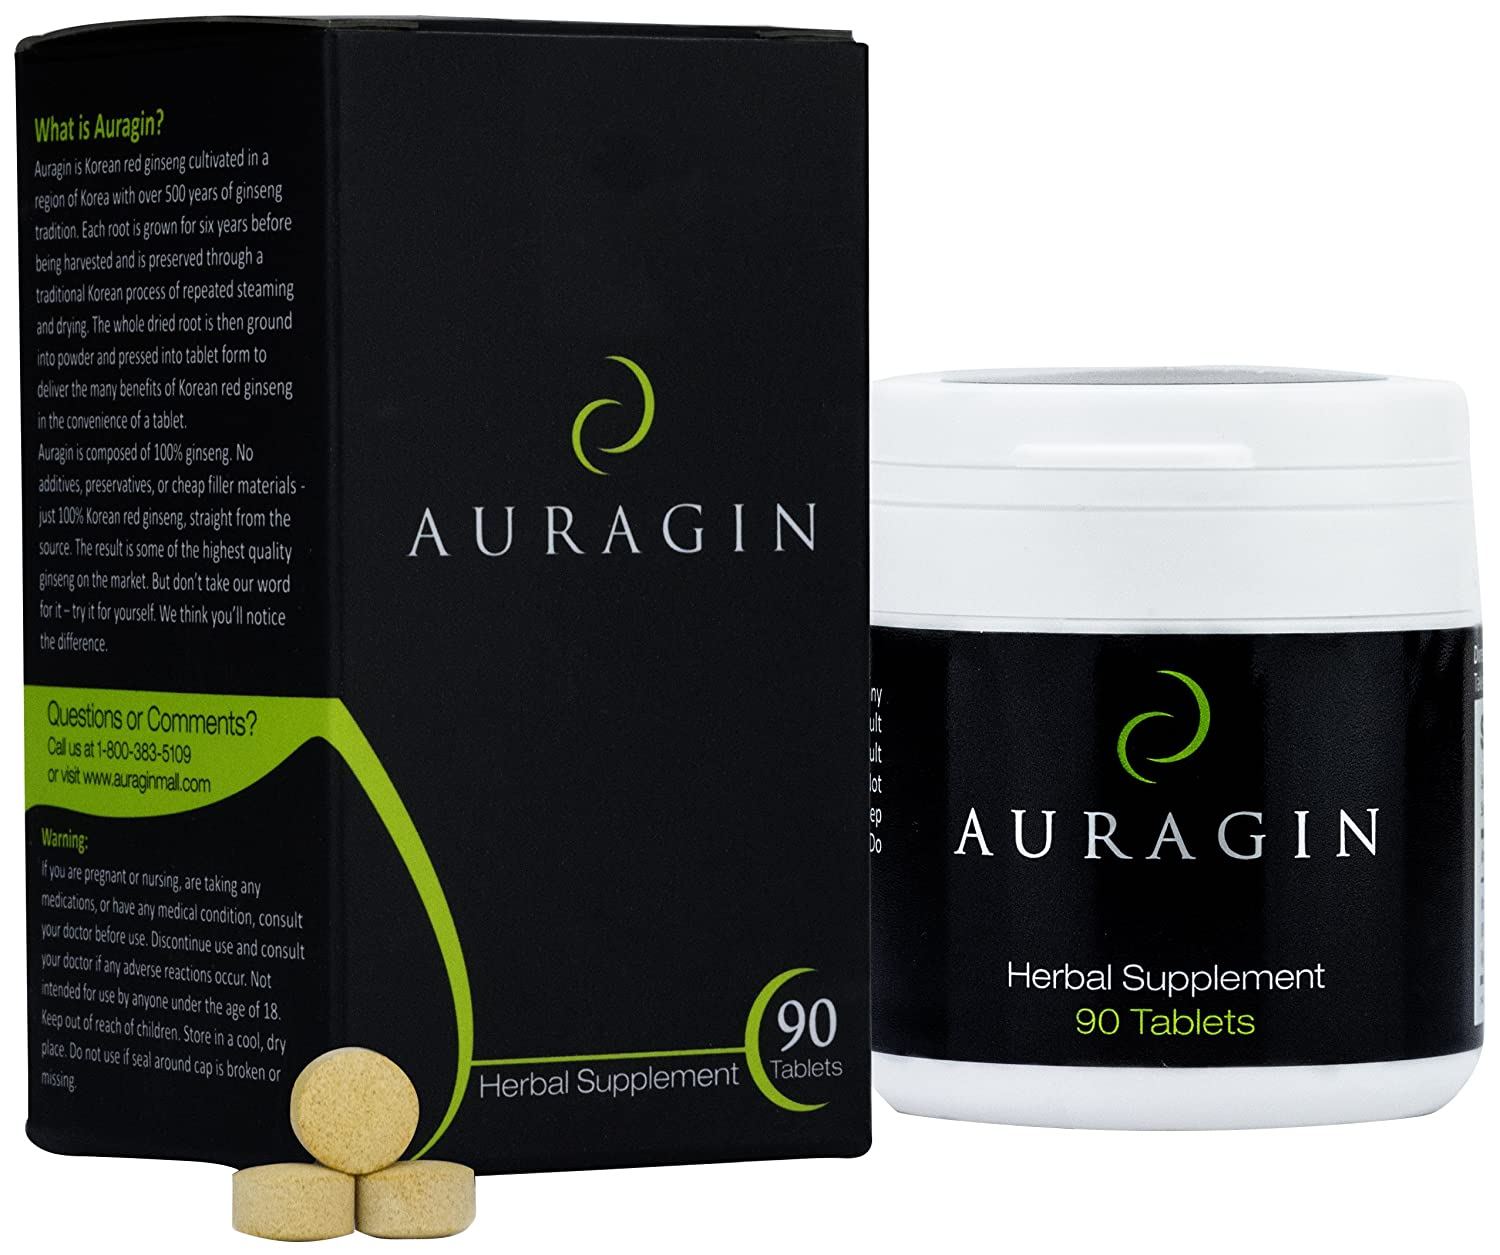 Auragin Authentic Korean Red Ginseng Made in Korea 6 Year Roots No Additives or Other Ingredients 100 Red Panax Ginseng in Every Tablet